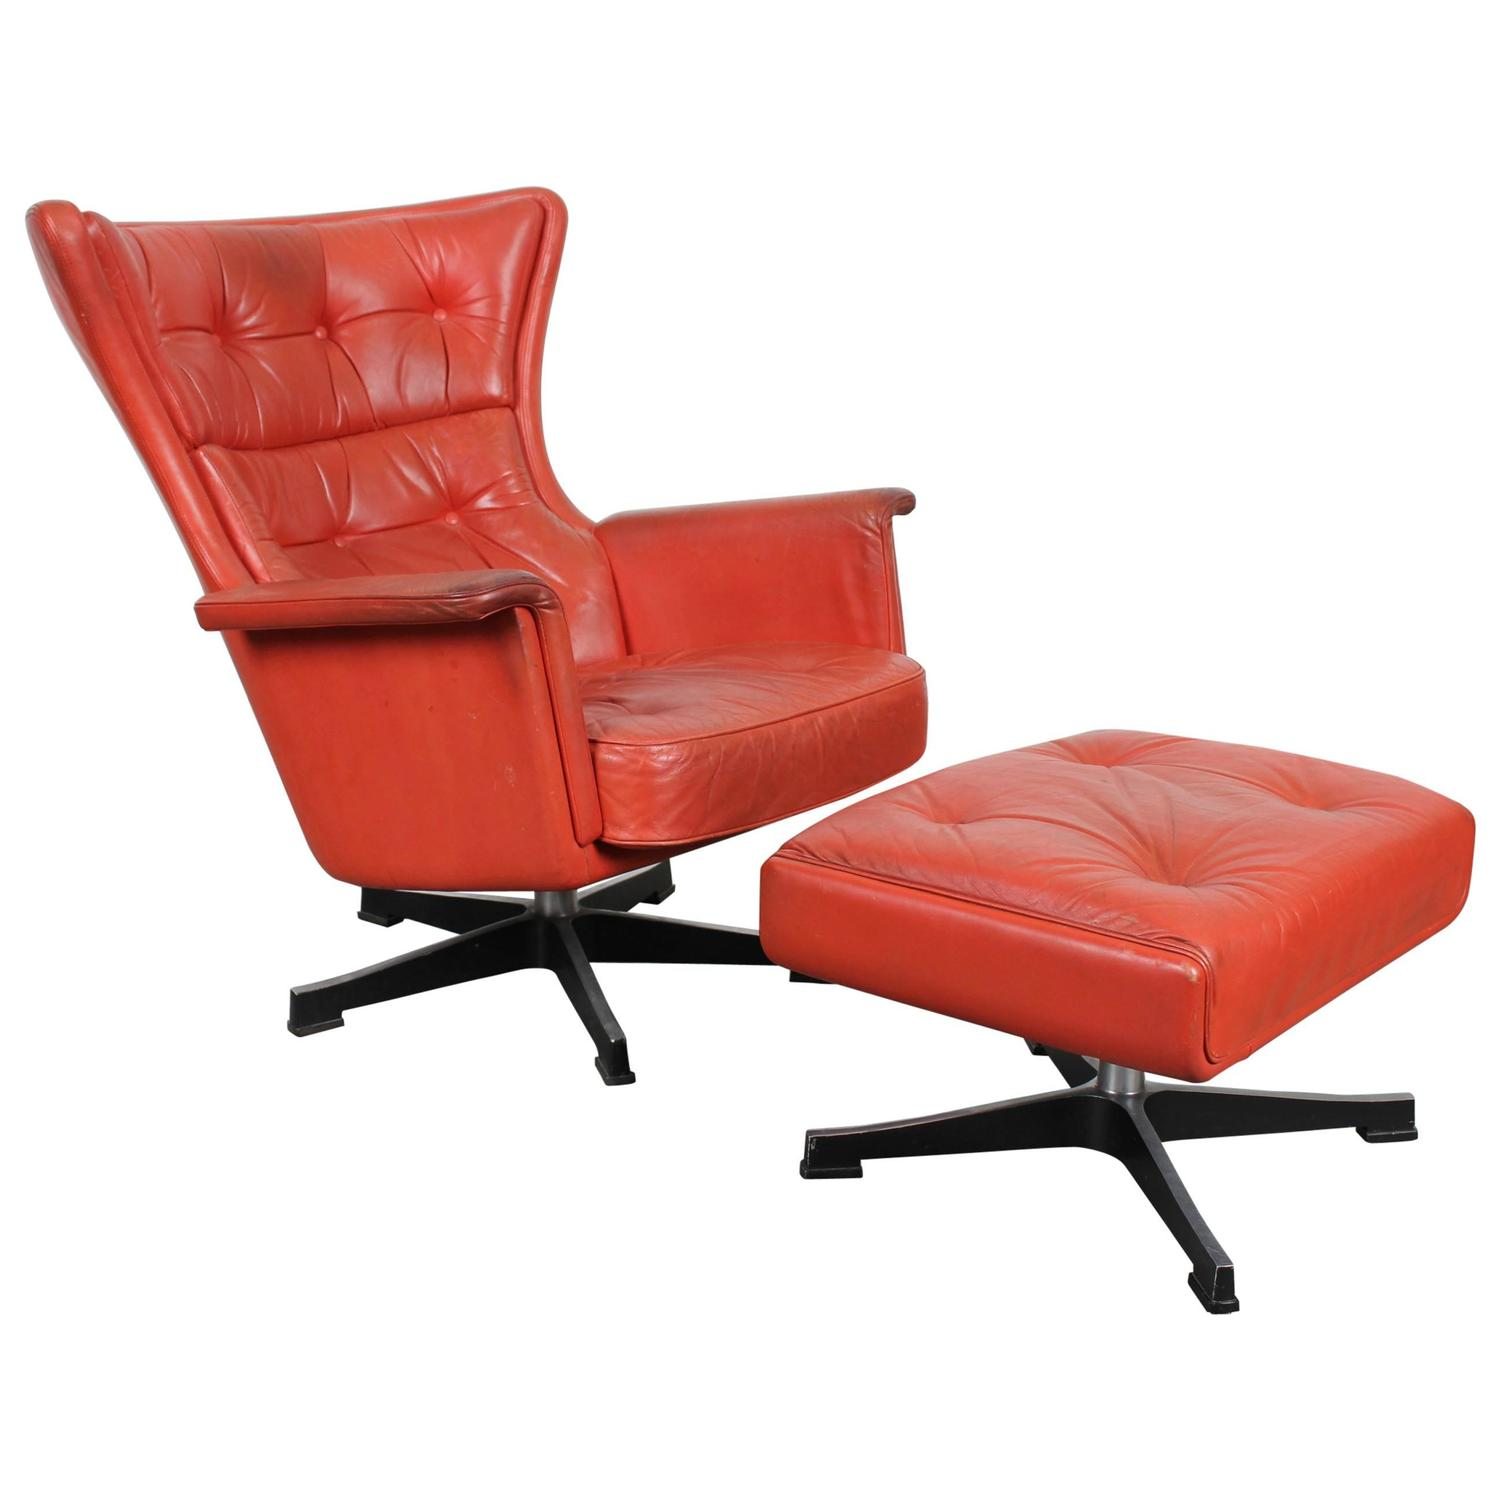 Mid century modern red leather swivel chair at 1stdibs for Modern leather chair